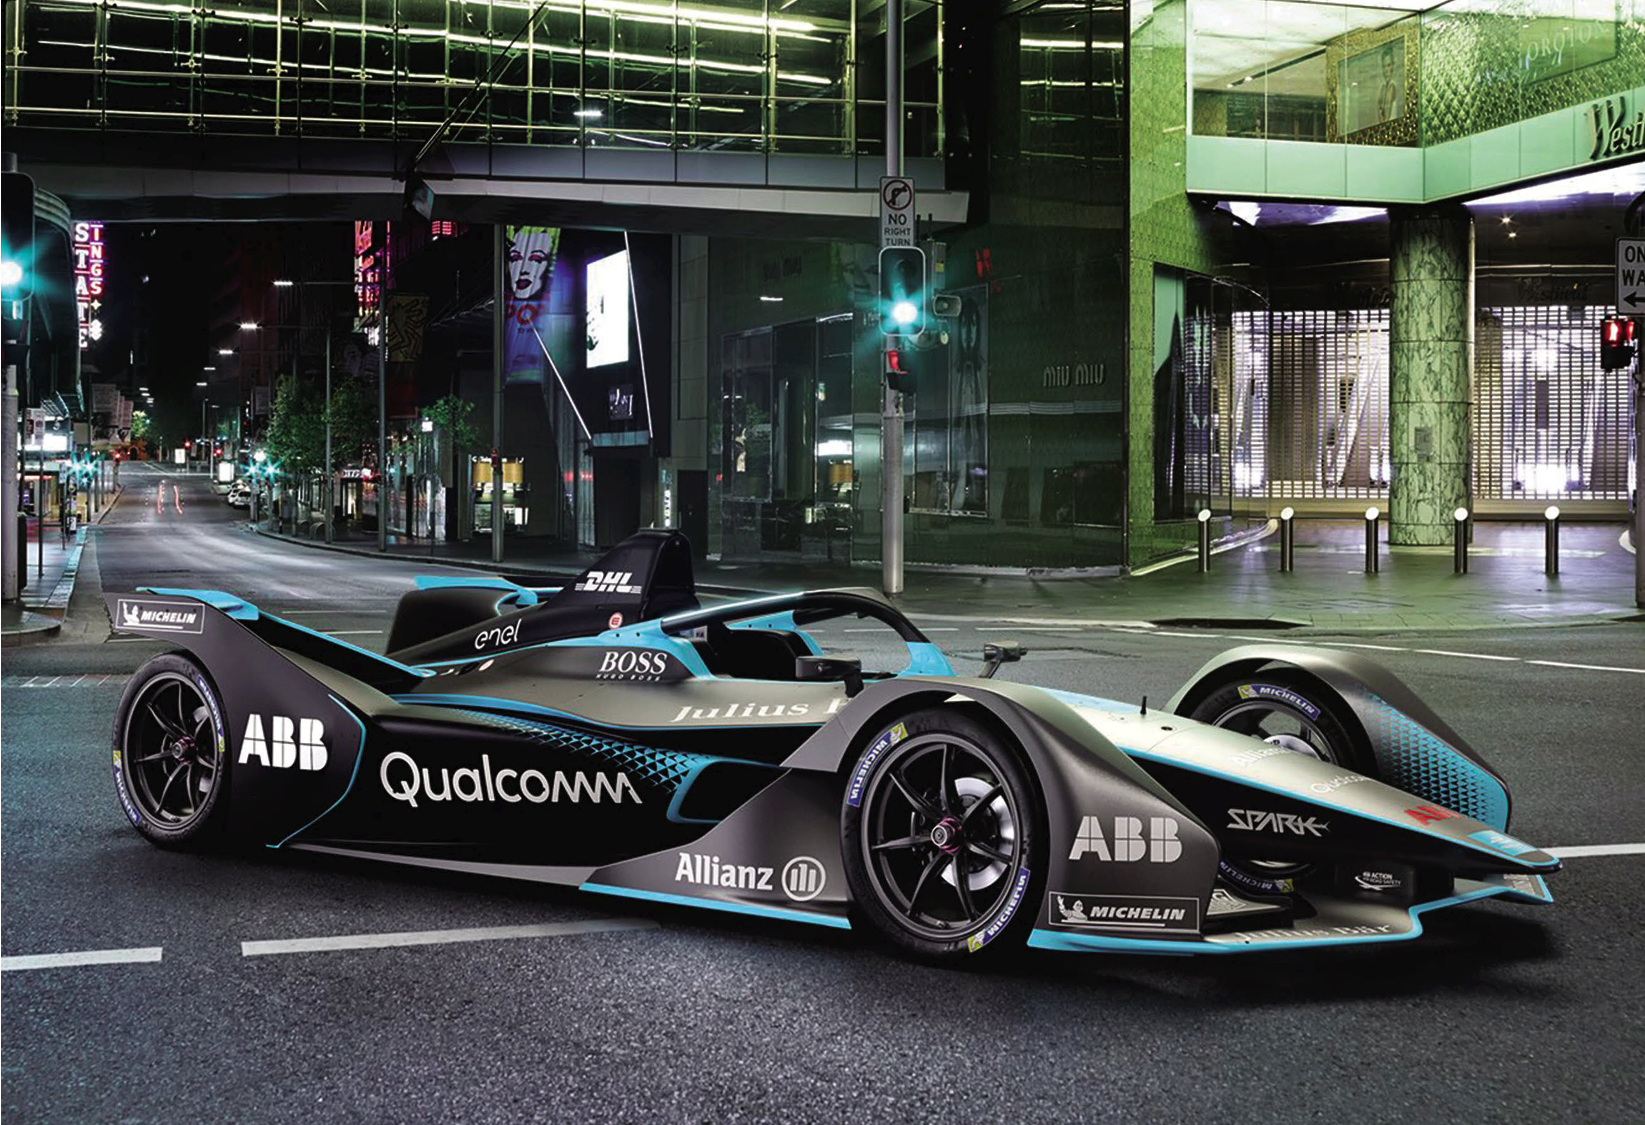 Enabling global racing innovators to craft the ultimate, race-winning vehicles, while also fulfilling industry requirements and optimizing performance